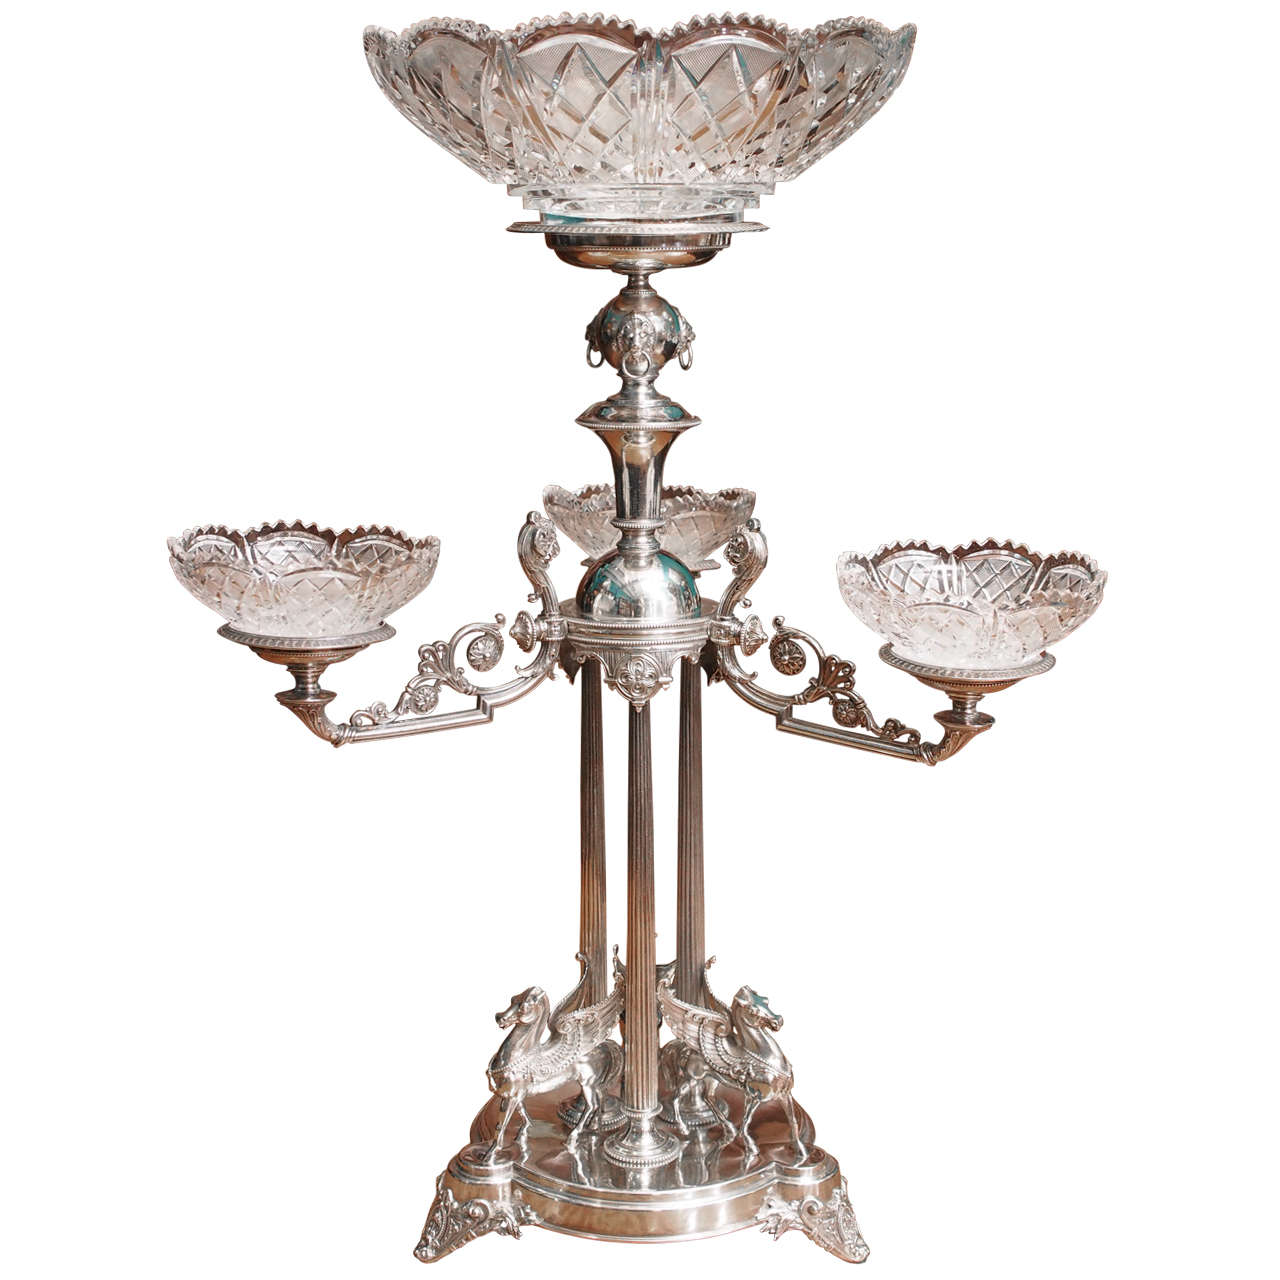 decor using antique epergne for dining table accessories